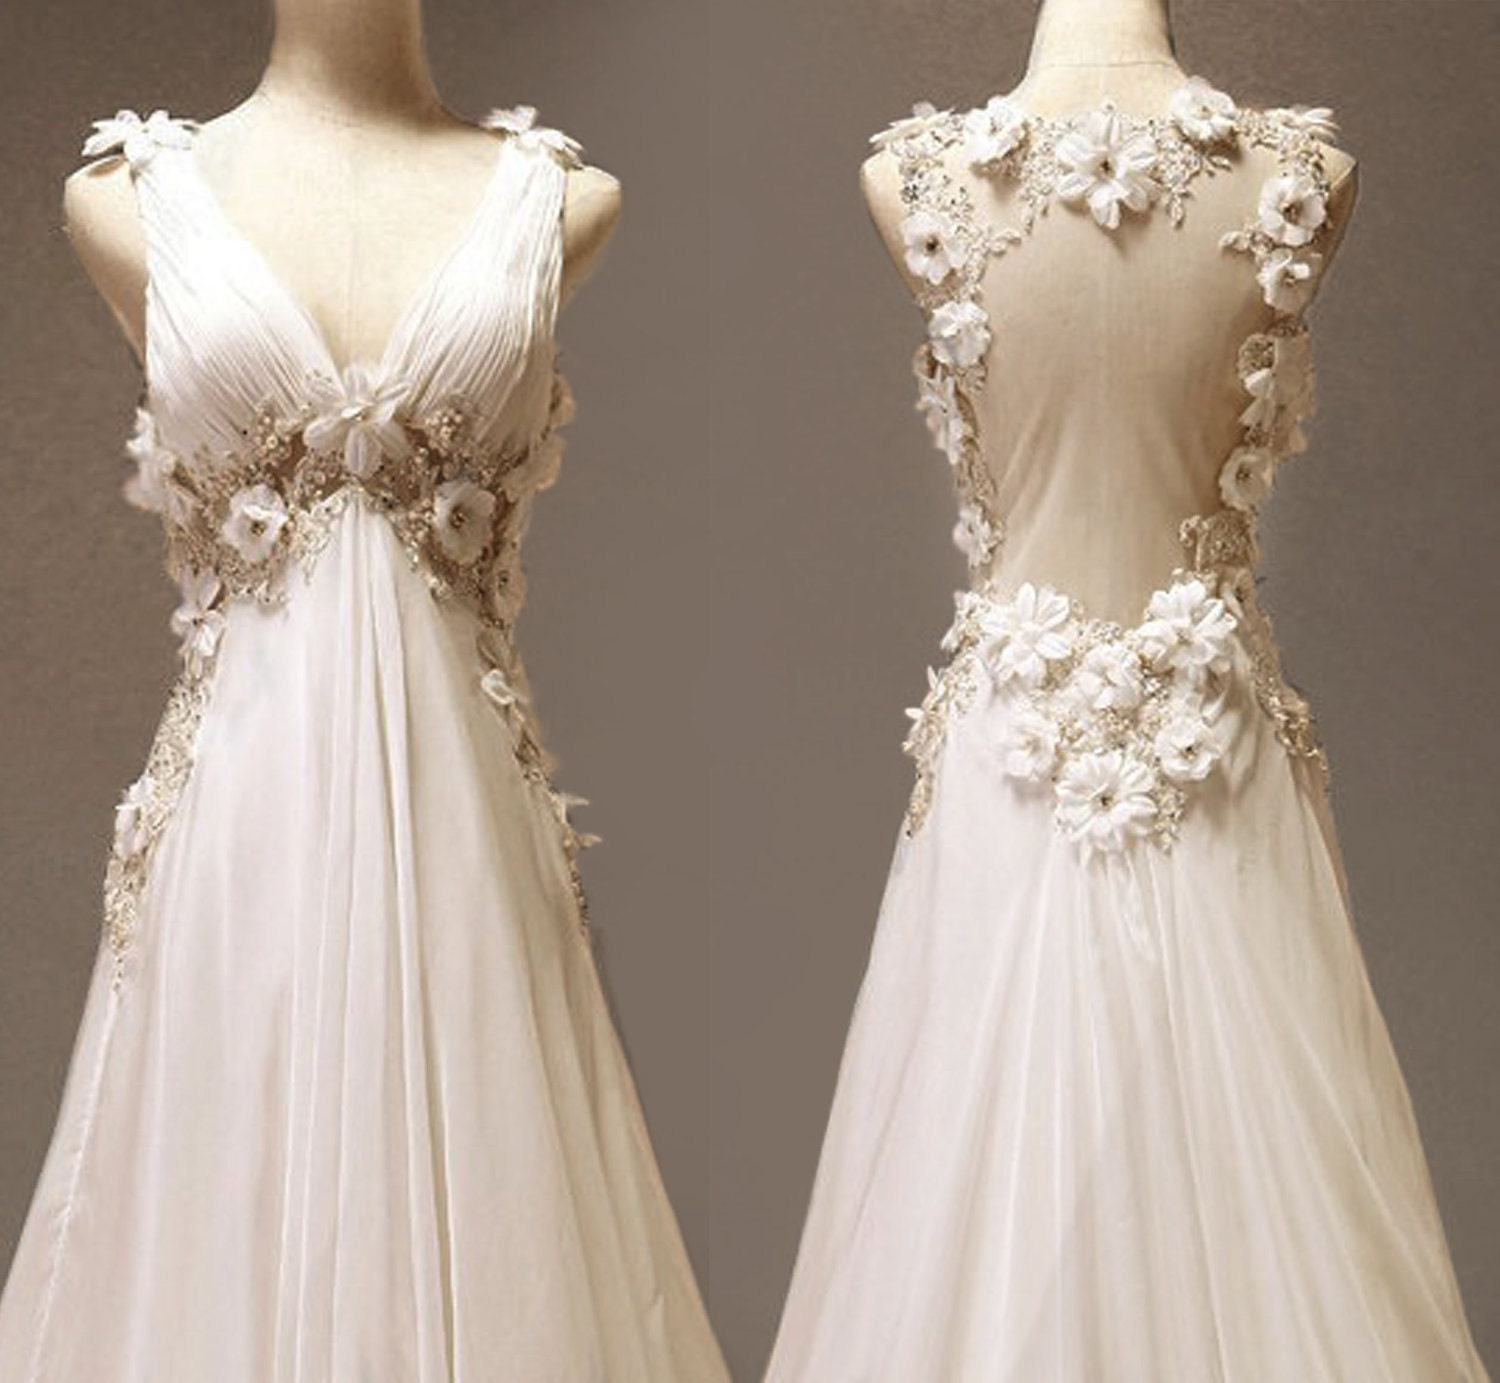 Vintage Chiffon Wedding Dress